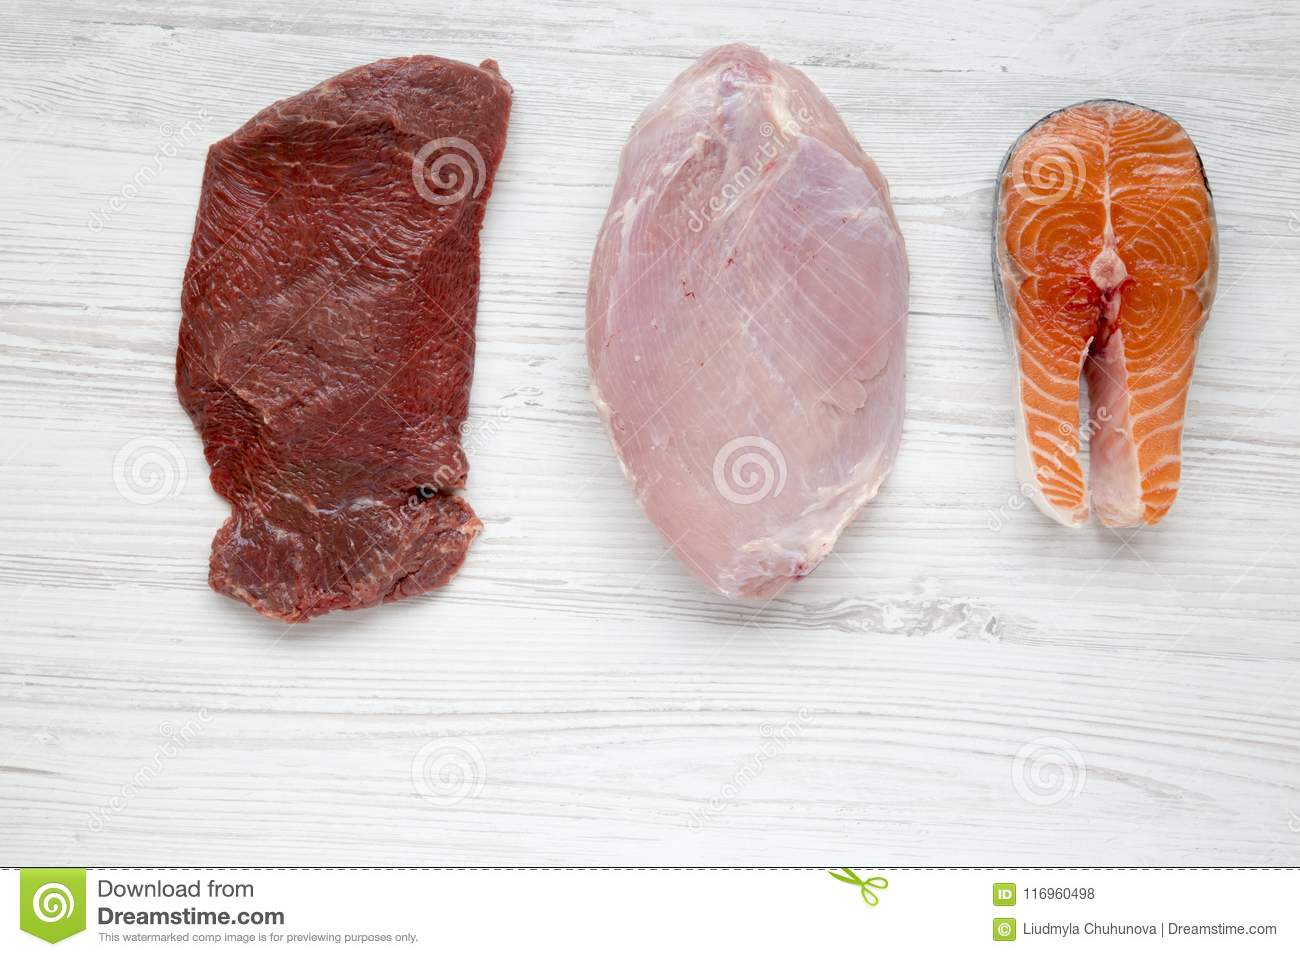 Uncooked raw beef meat, turkey breast and salmon steak on white wooden background, top view. Flat lay.